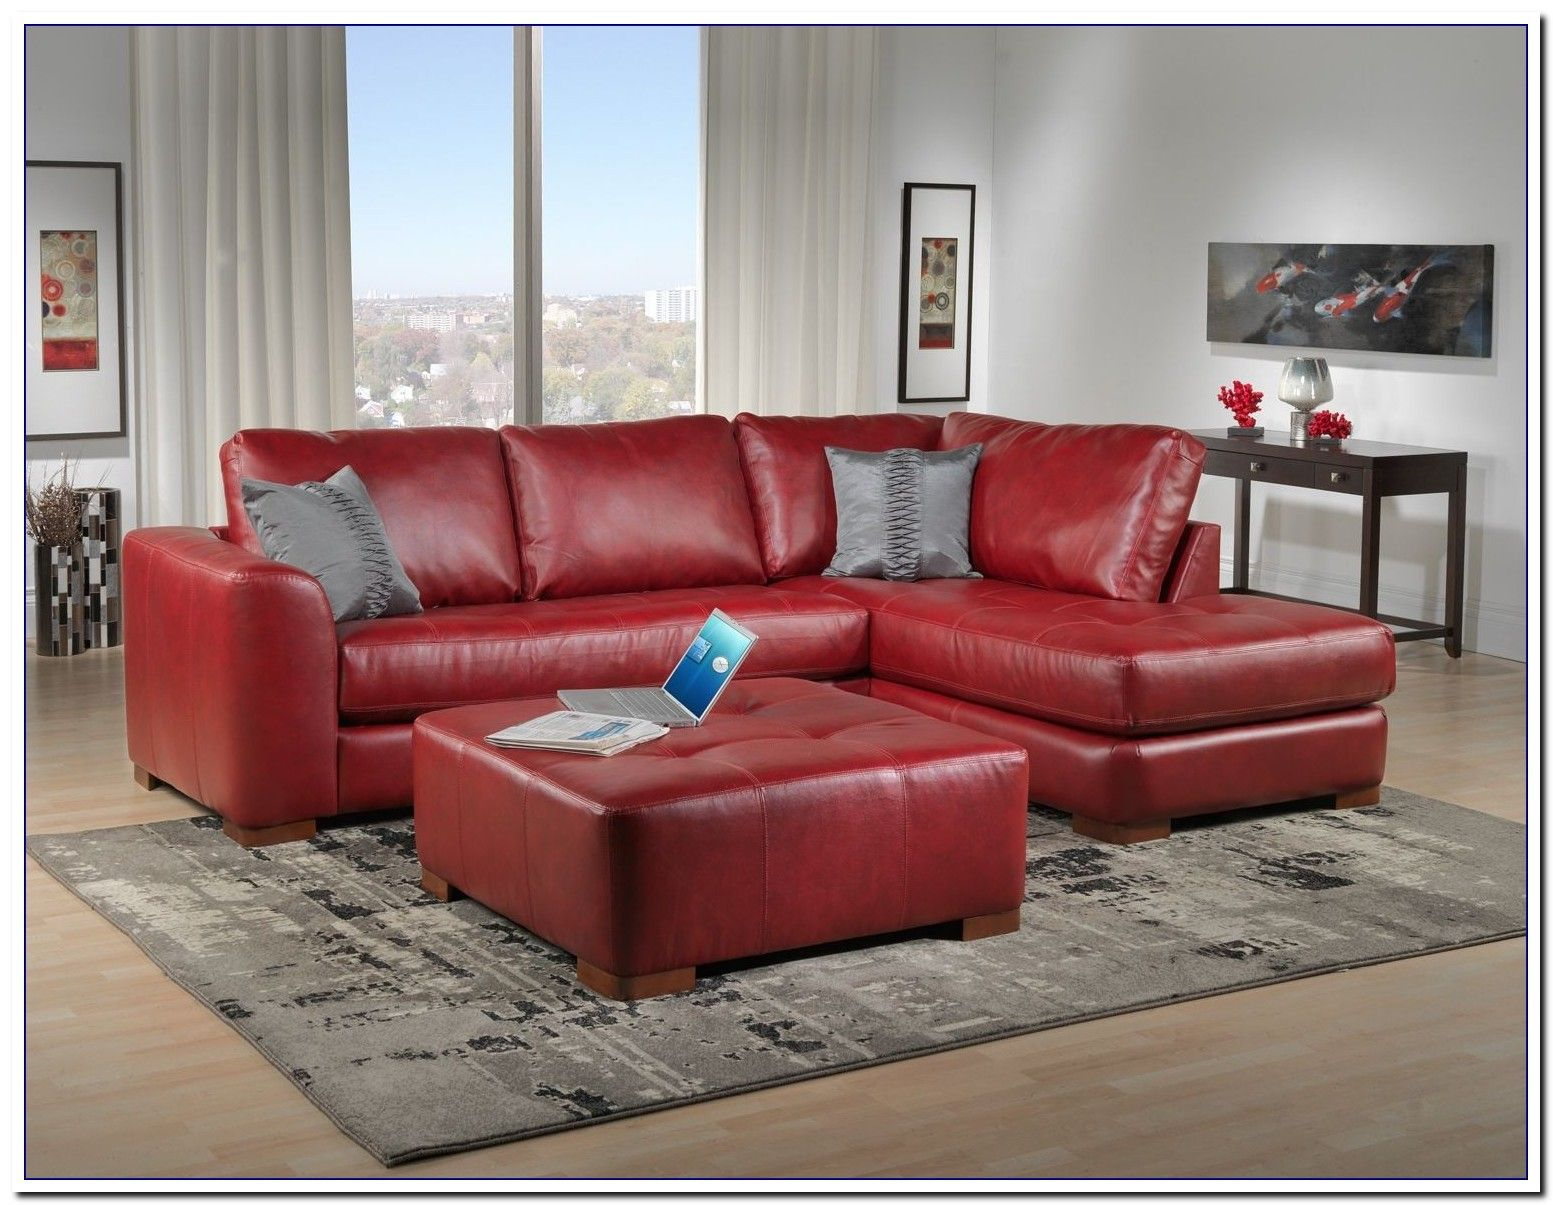 76 Reference Of Leather Sofa Furniture Ideas In 2020 Red Leather Sofa Living Room Red Couch Living Room Red Leather Couch Living Room